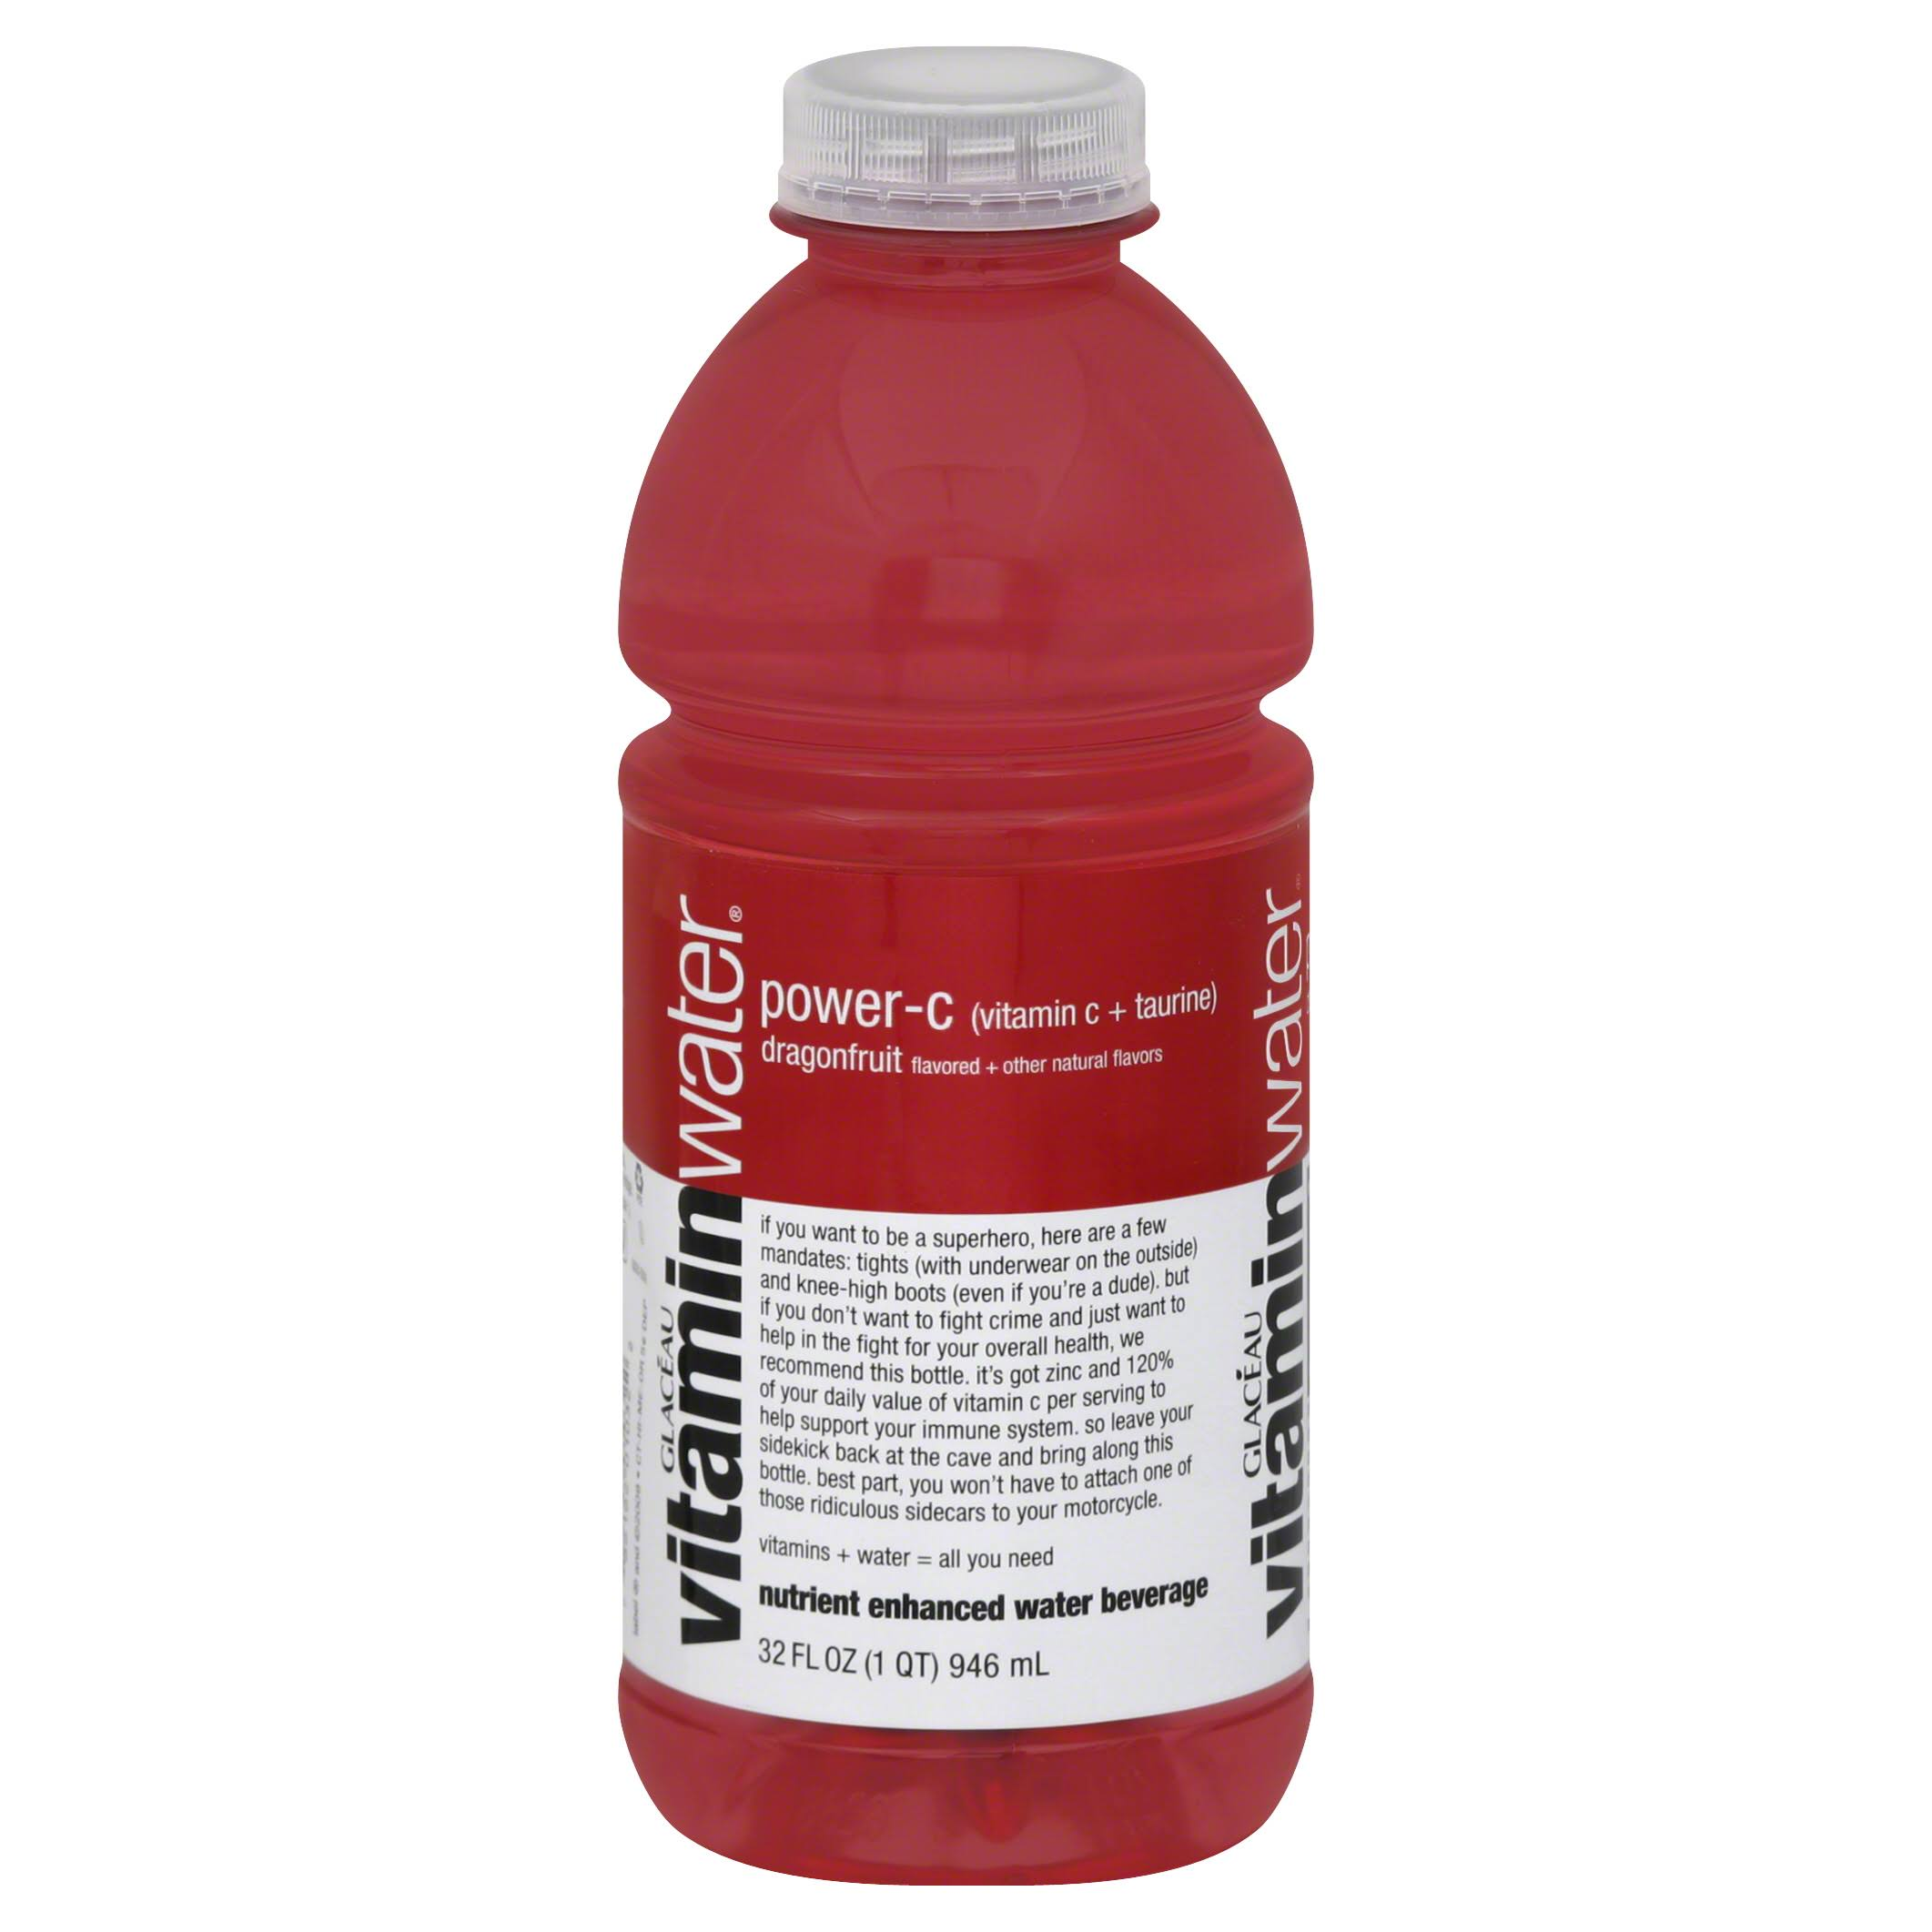 Vitamin Water Power-C - Dragon Fruit